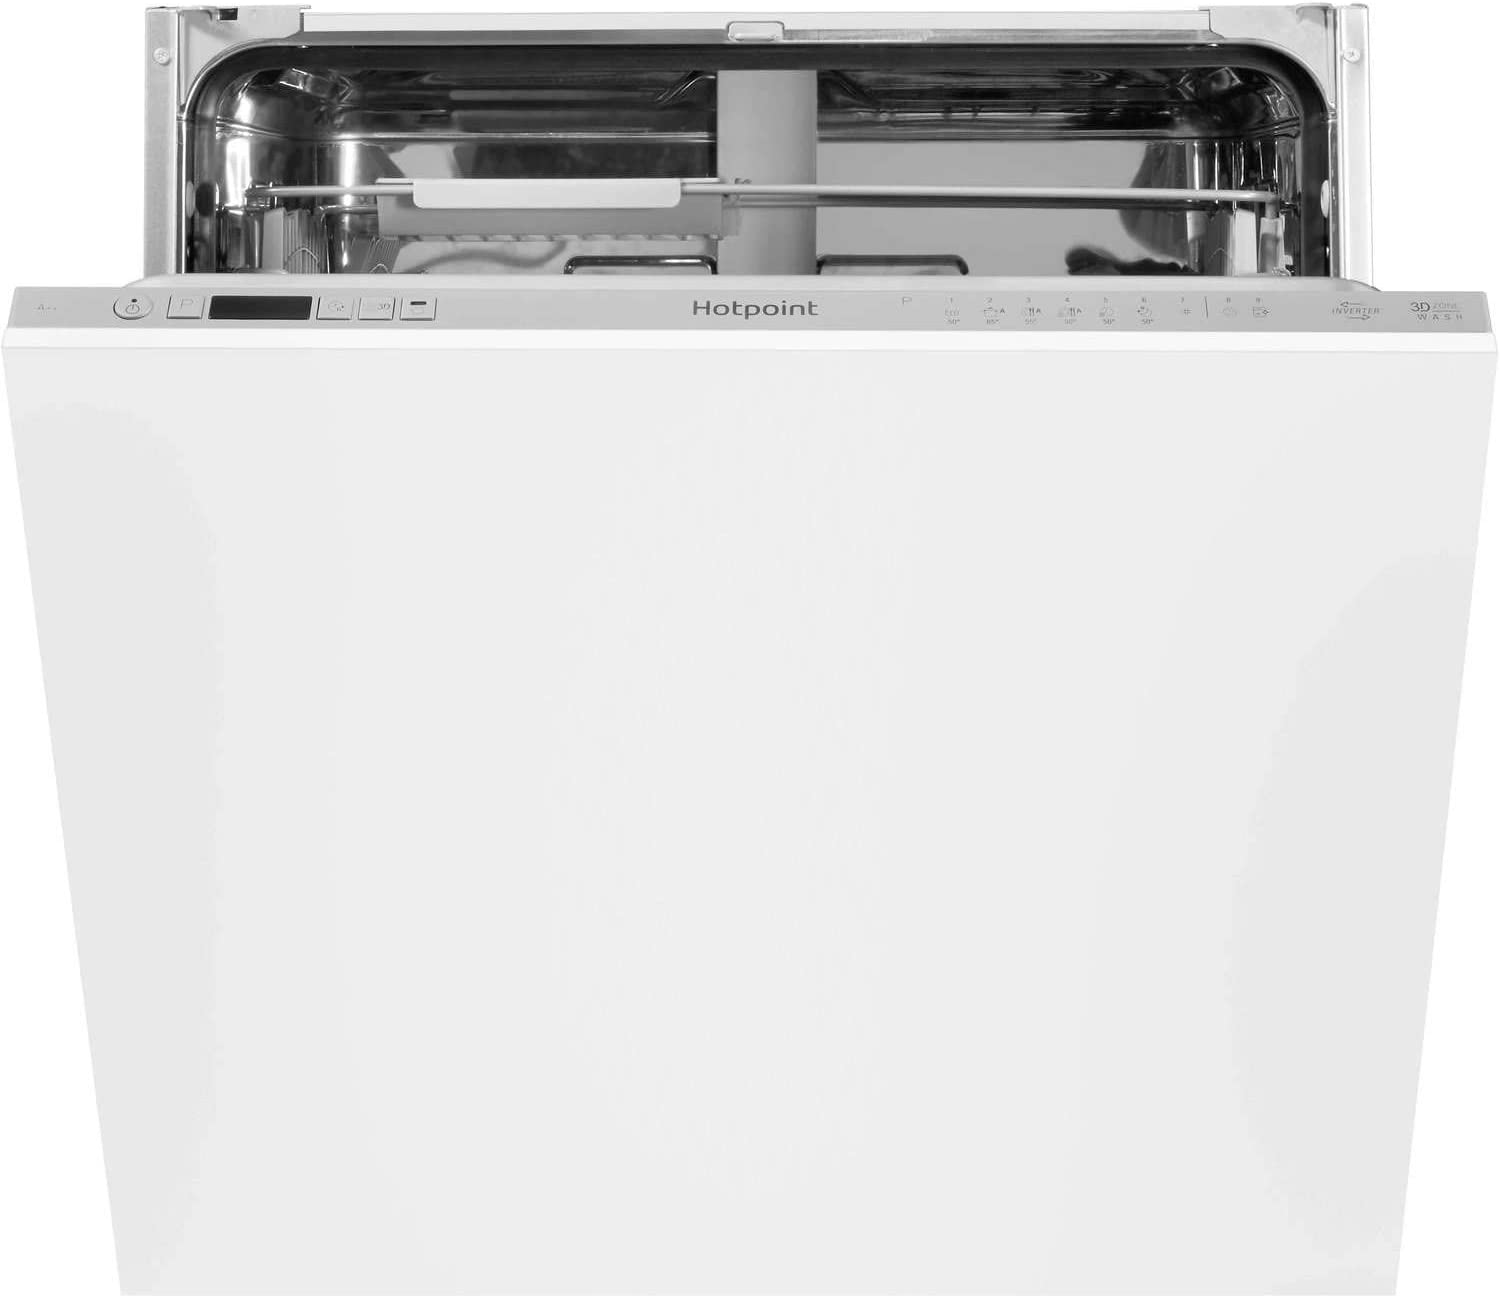 Hotpoint HEIC3C26C Built In Full Size Dishwasher 14 place A++ 9L 46dB 7 progs + EXPRESS WASH